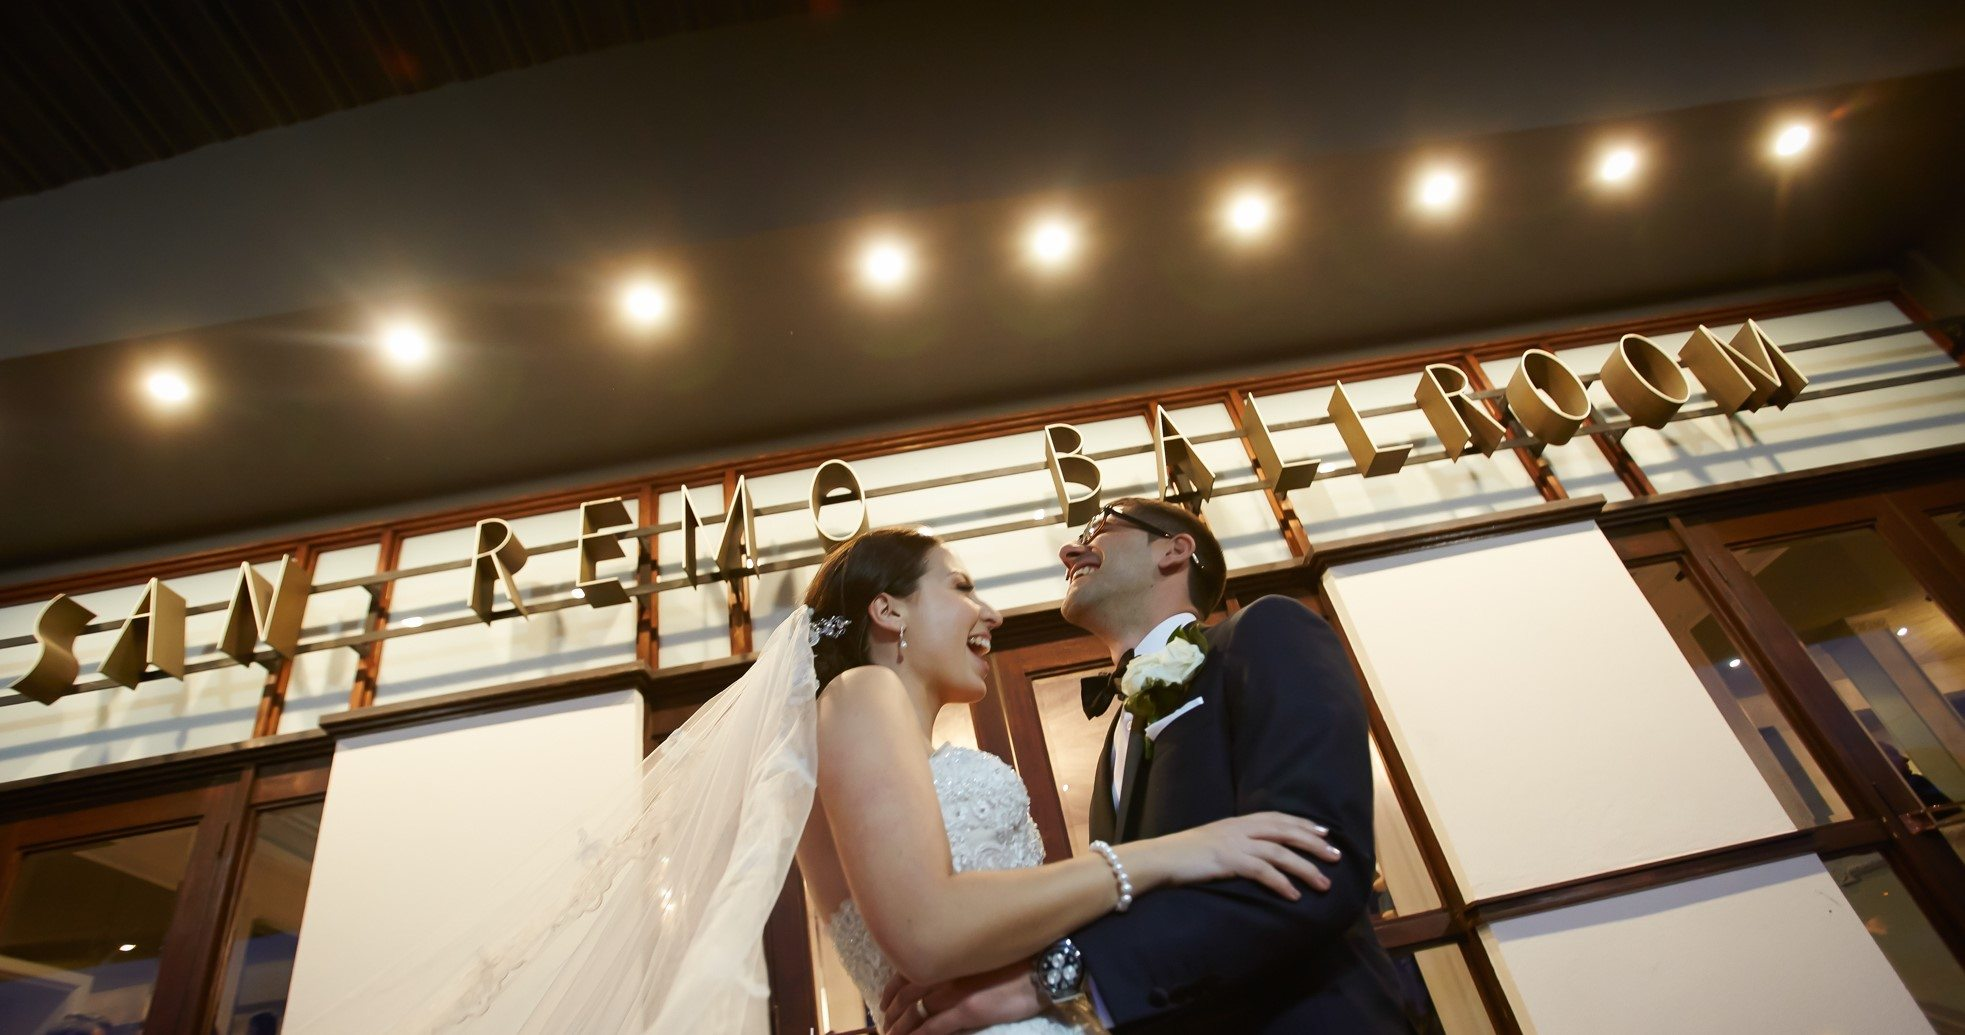 Bride and groom under lights and sign